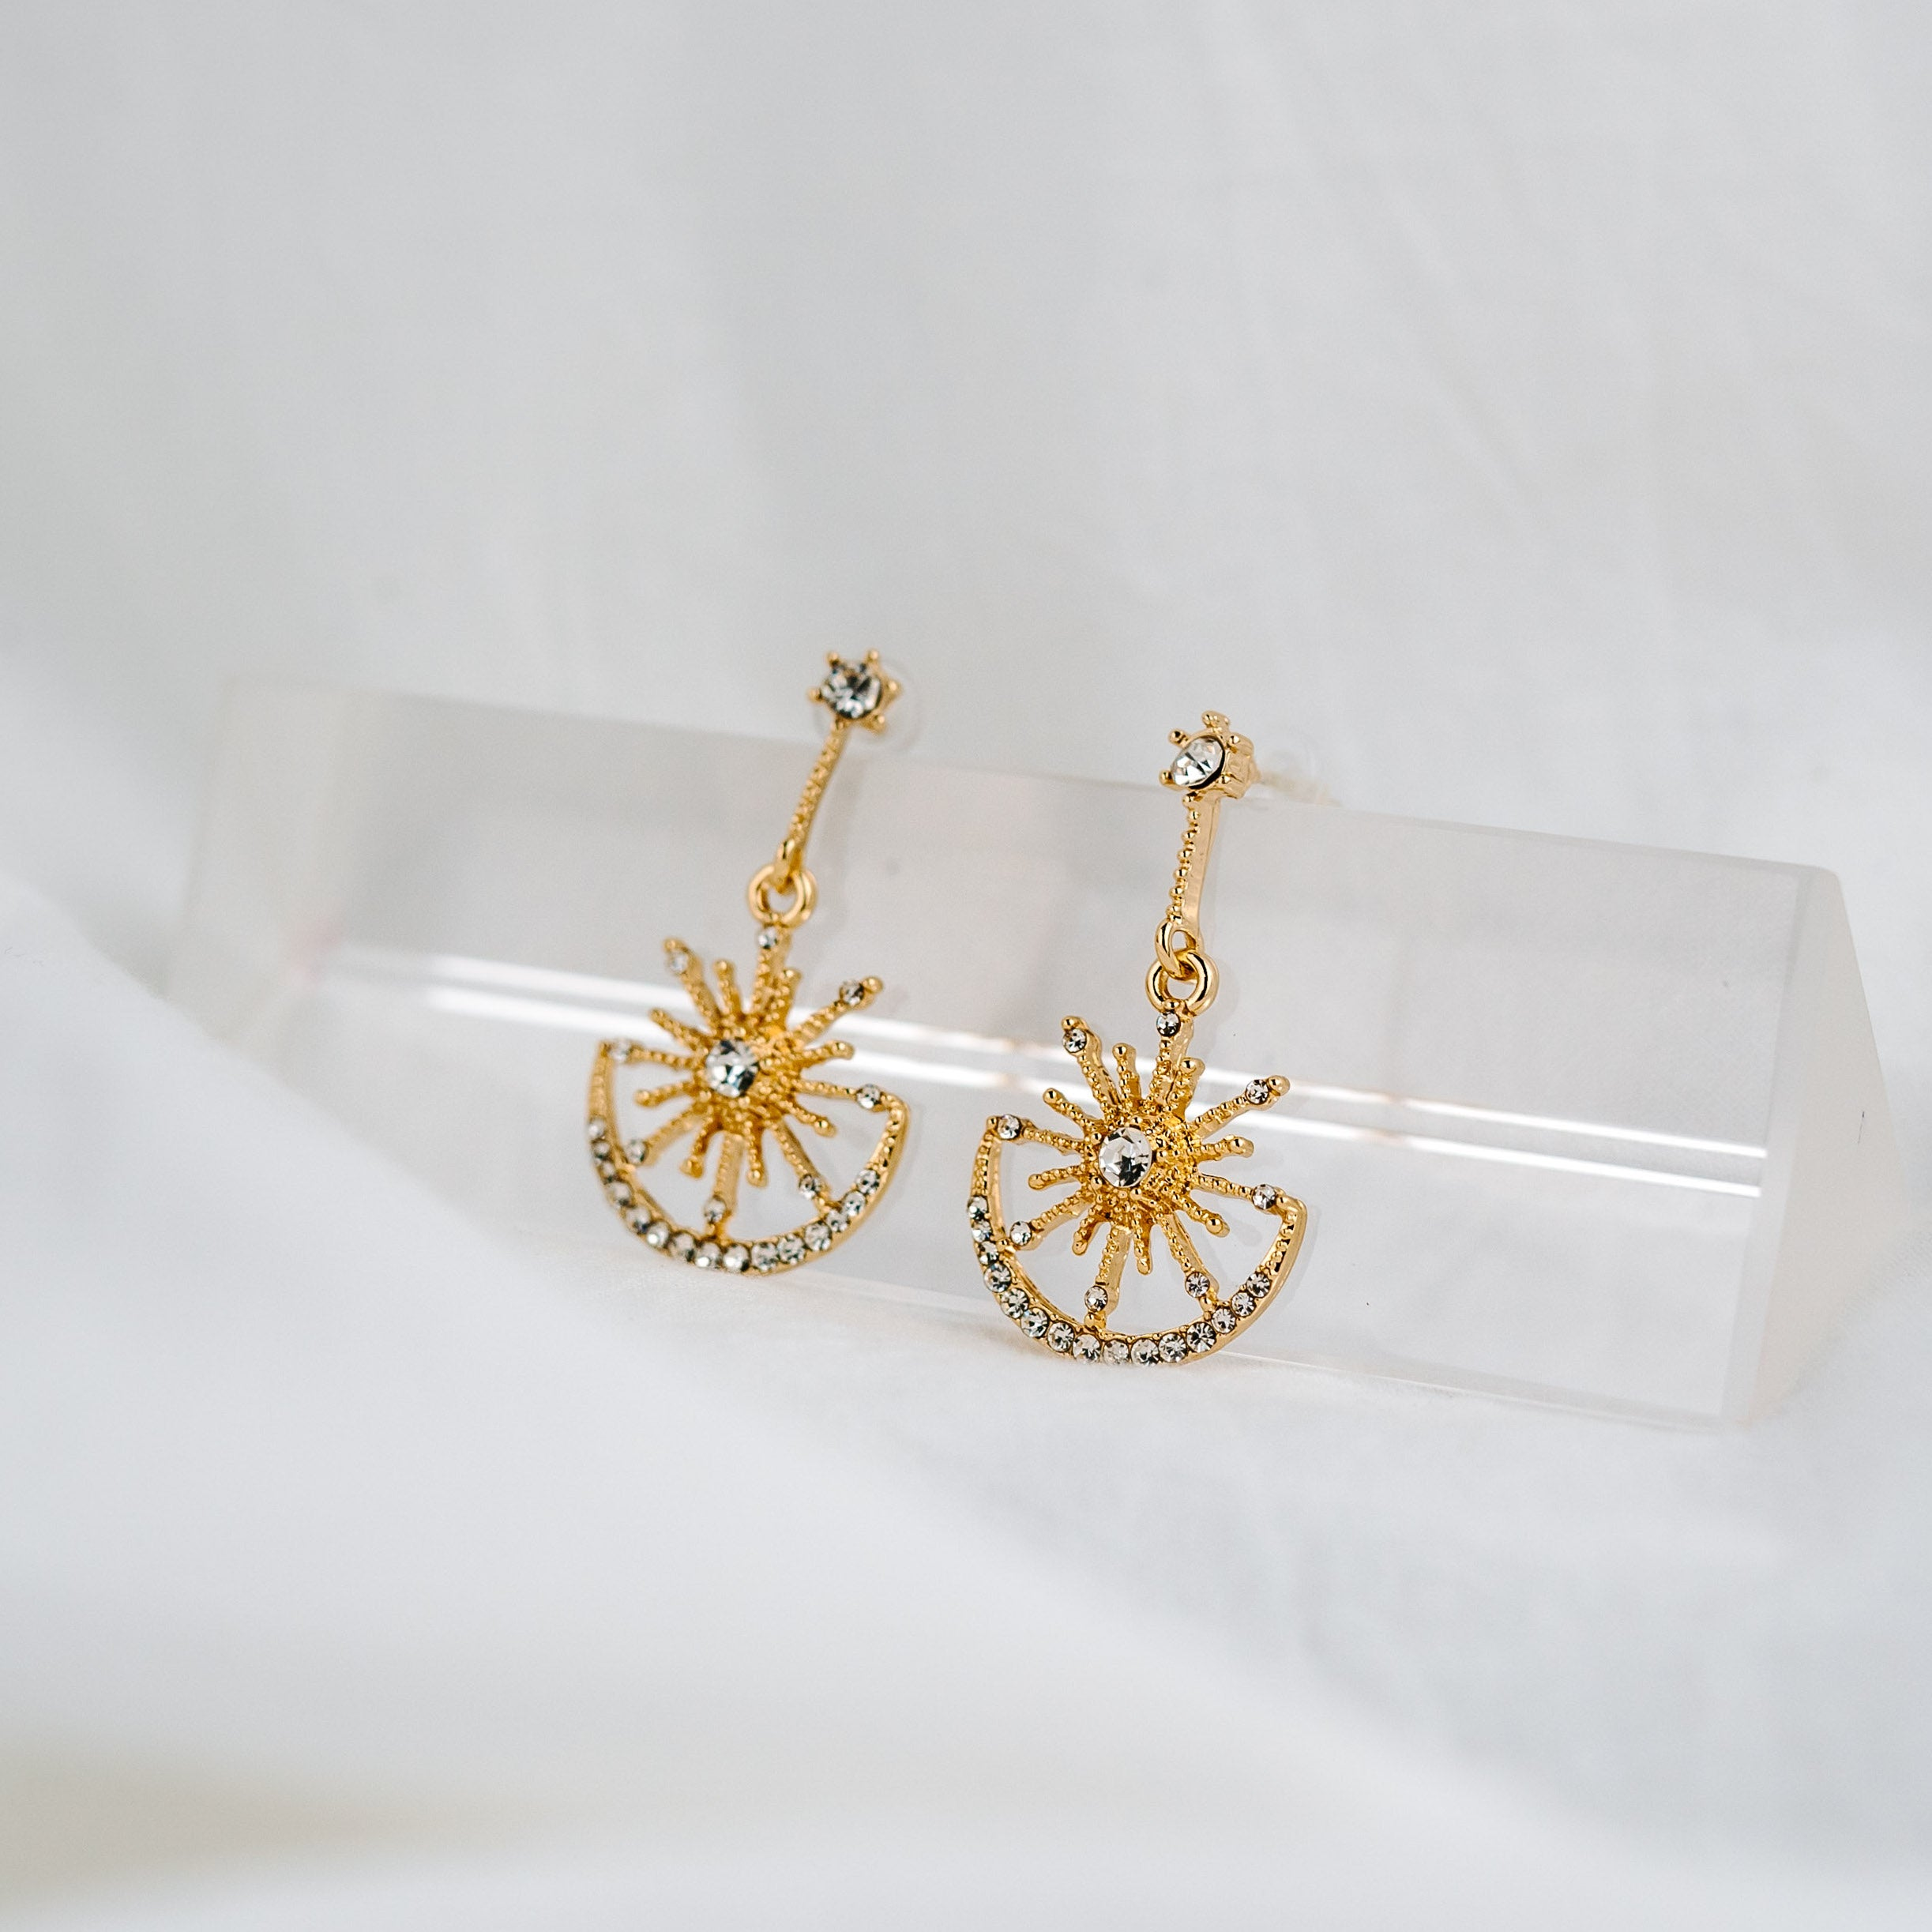 925 SILVER Zadina Celestial Earrings (Gold)